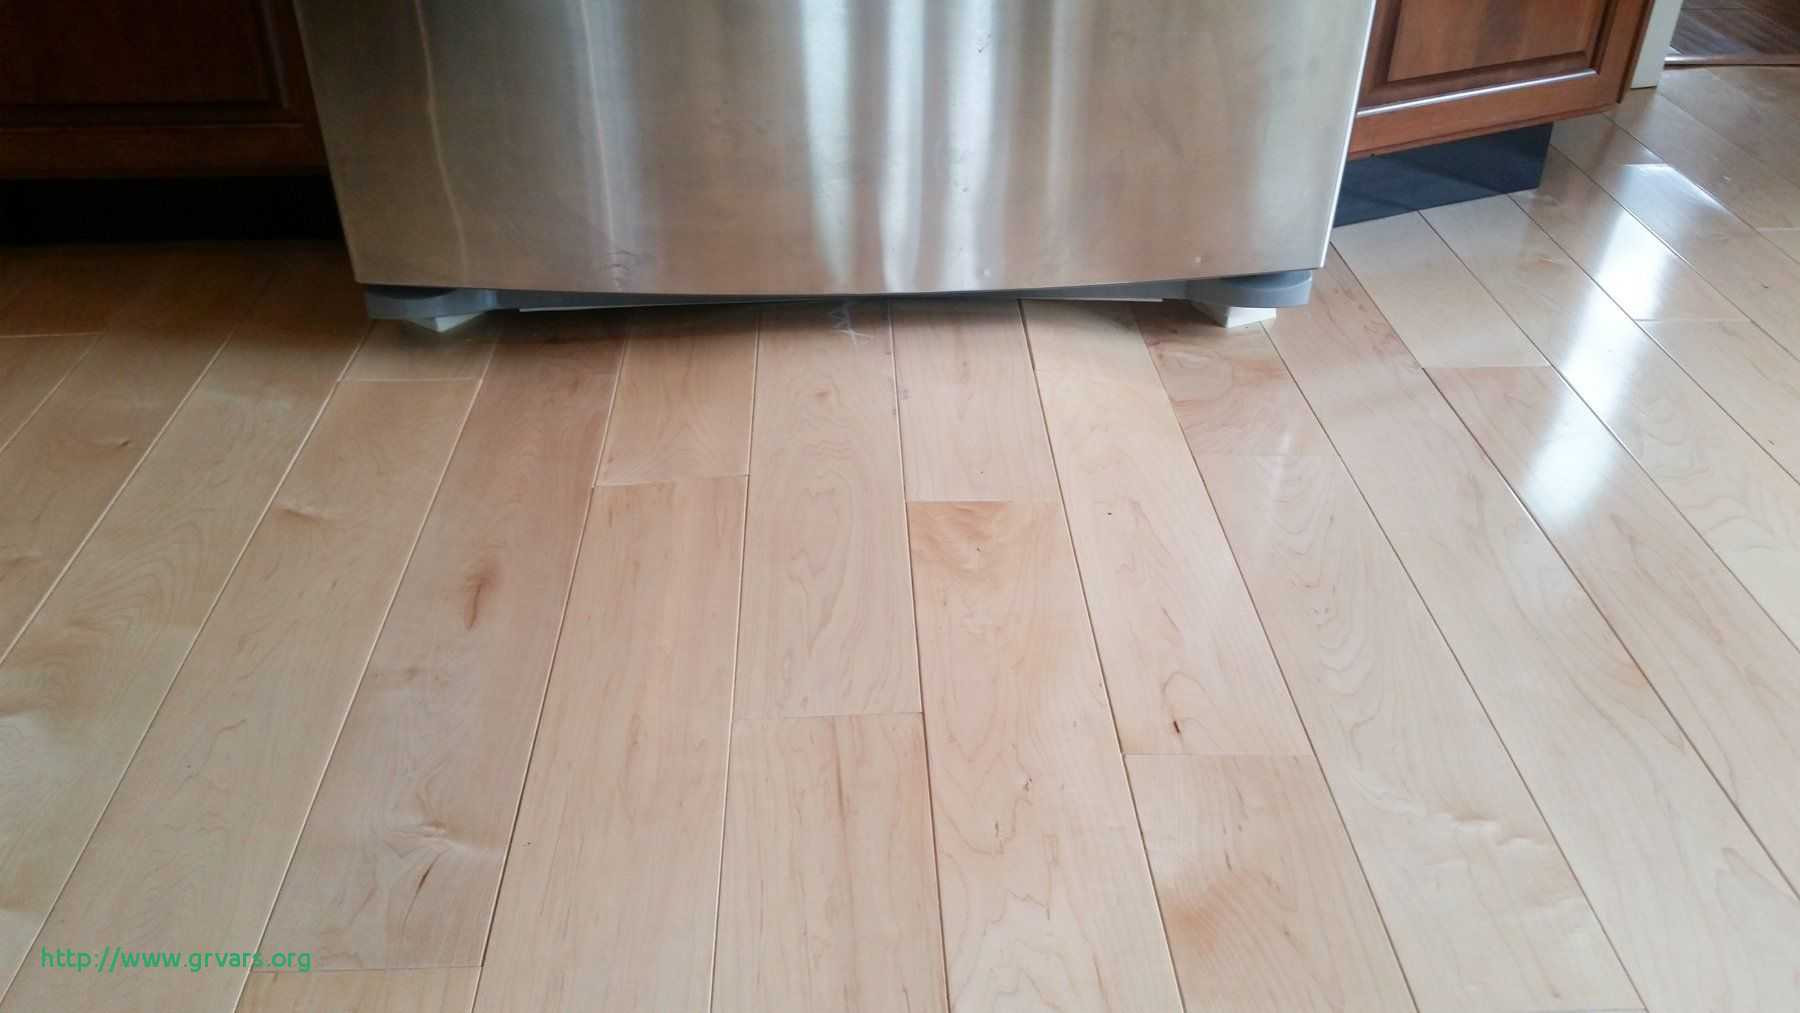 can you clean hardwood floors with vinegar of 23 nouveau how to clean engineered wood floors with vinegar ideas blog regarding how to clean engineered wood floors with vinegar unique easy tips removing water damage from wood